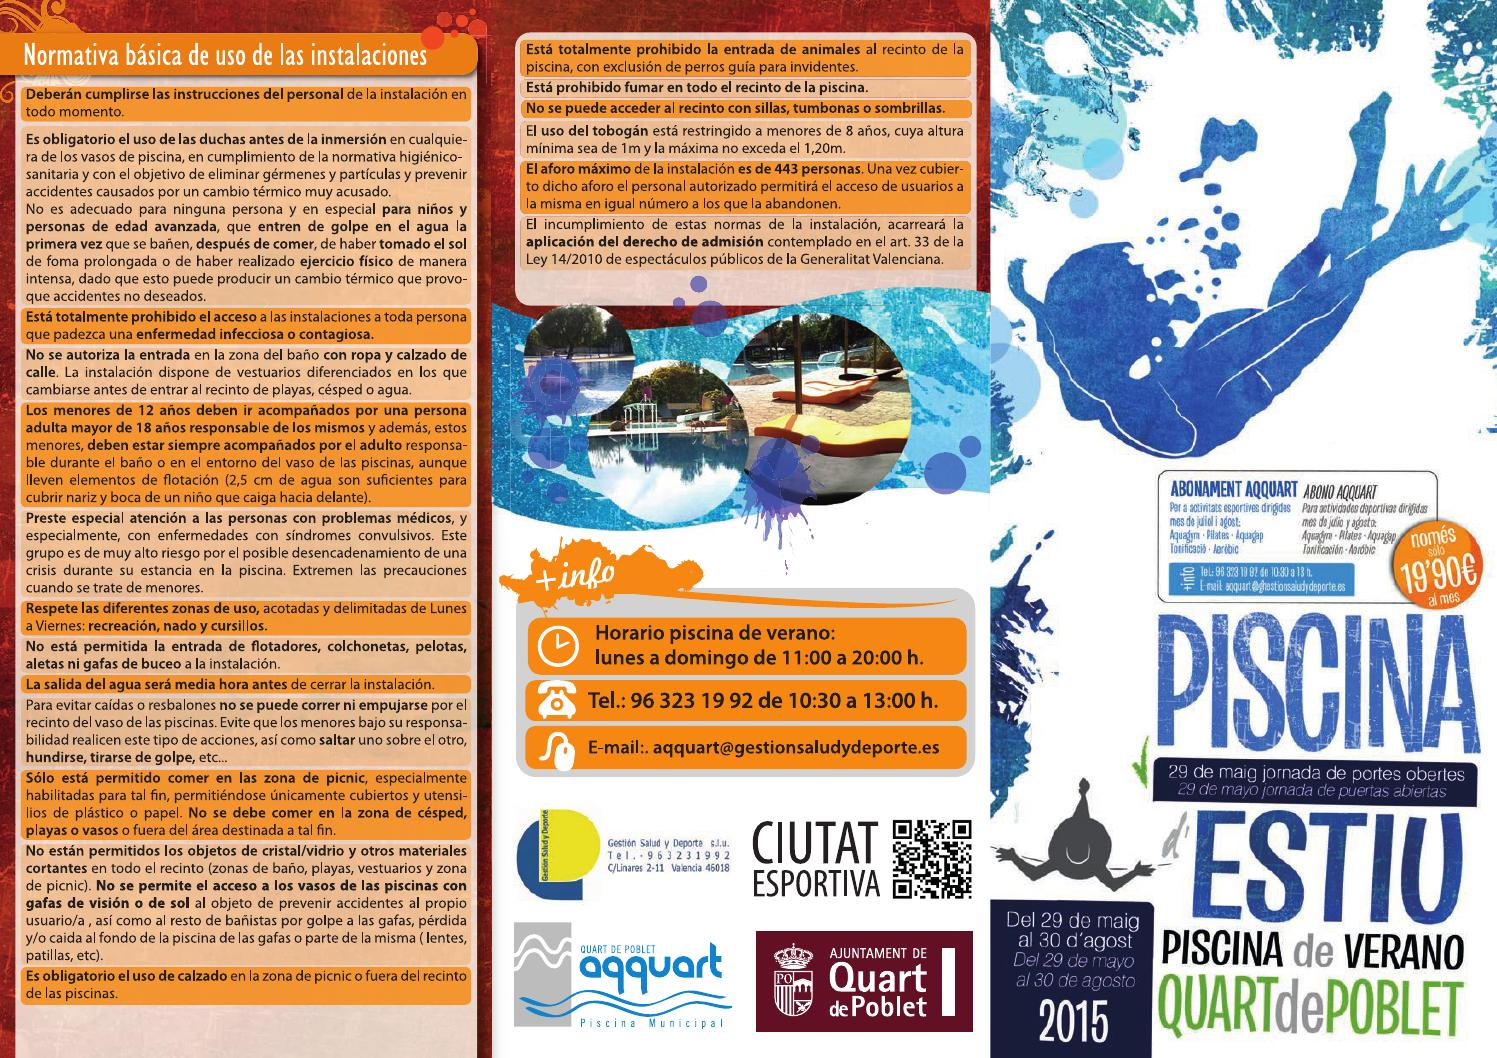 Horario piscina de verano 2015 by quart de poblet issuu for Piscina quart de poblet